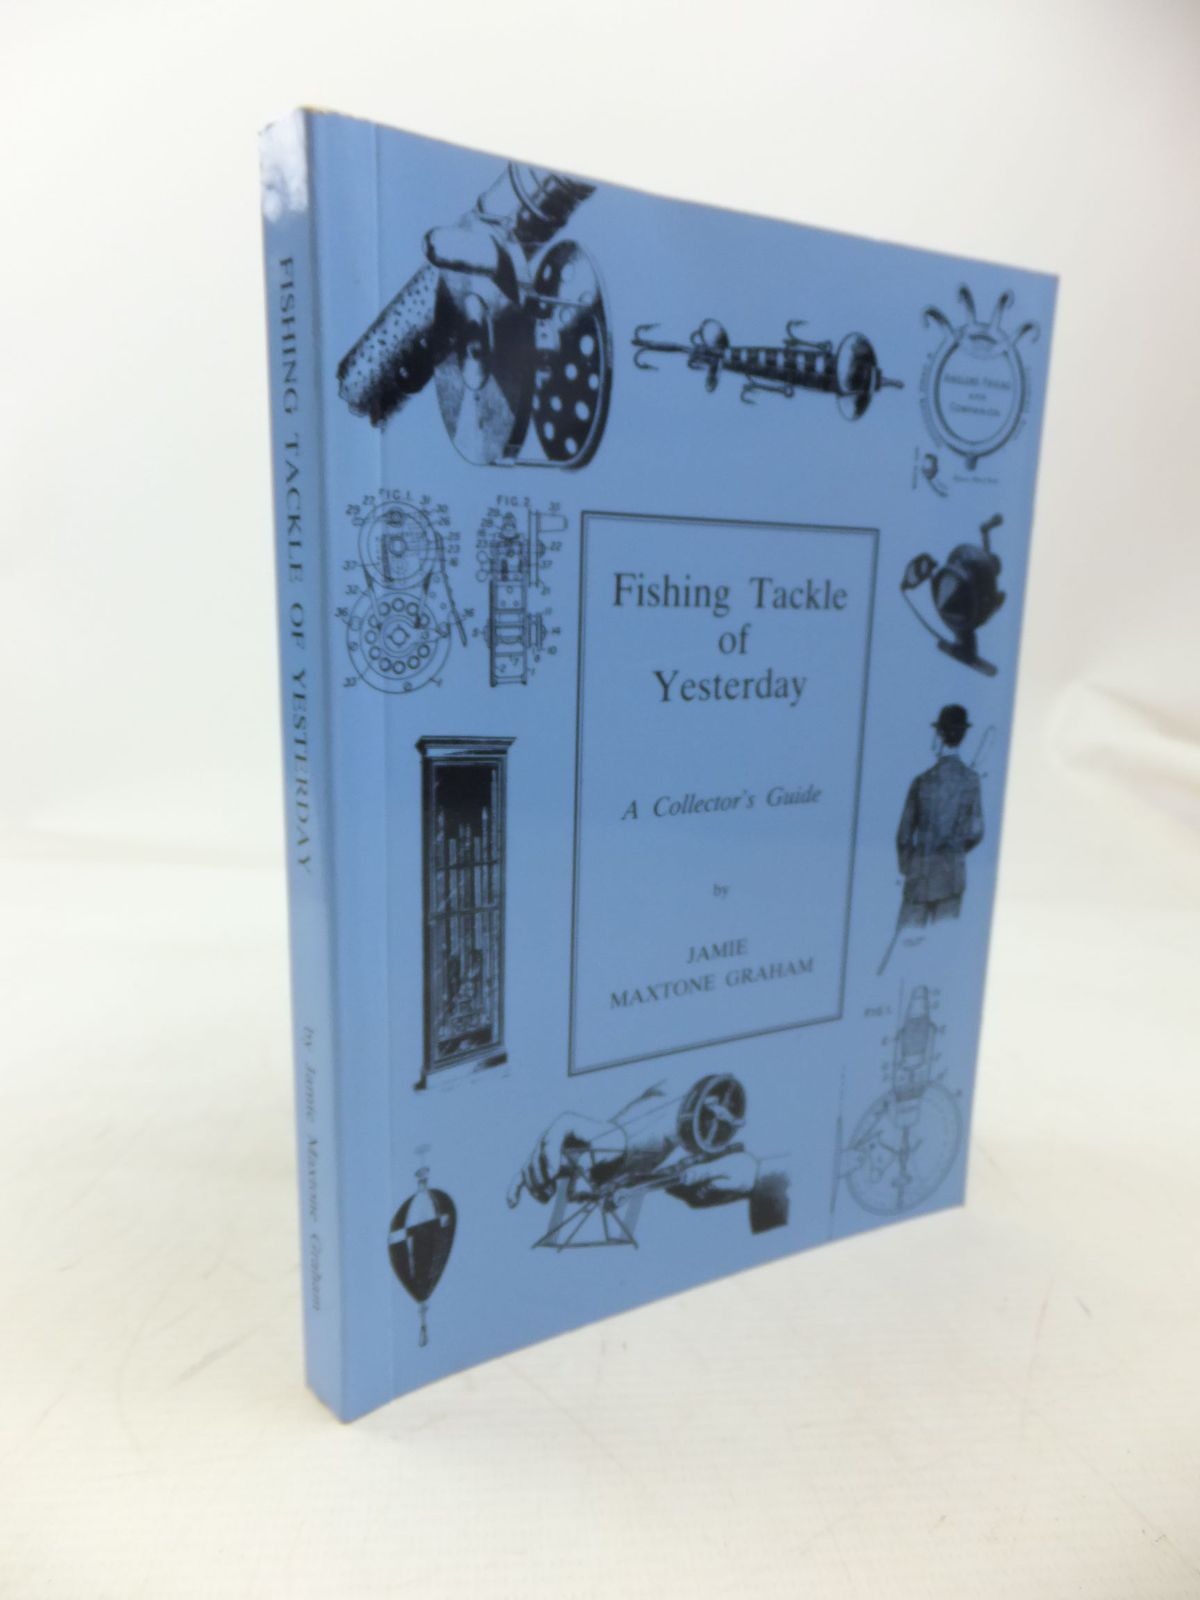 Photo of FISHING TACKLE OF YESTERDAY A COLLECTOR'S GUIDE written by Graham, Jamie Maxstone published by Jamie Maxtone Graham (STOCK CODE: 2118400)  for sale by Stella & Rose's Books